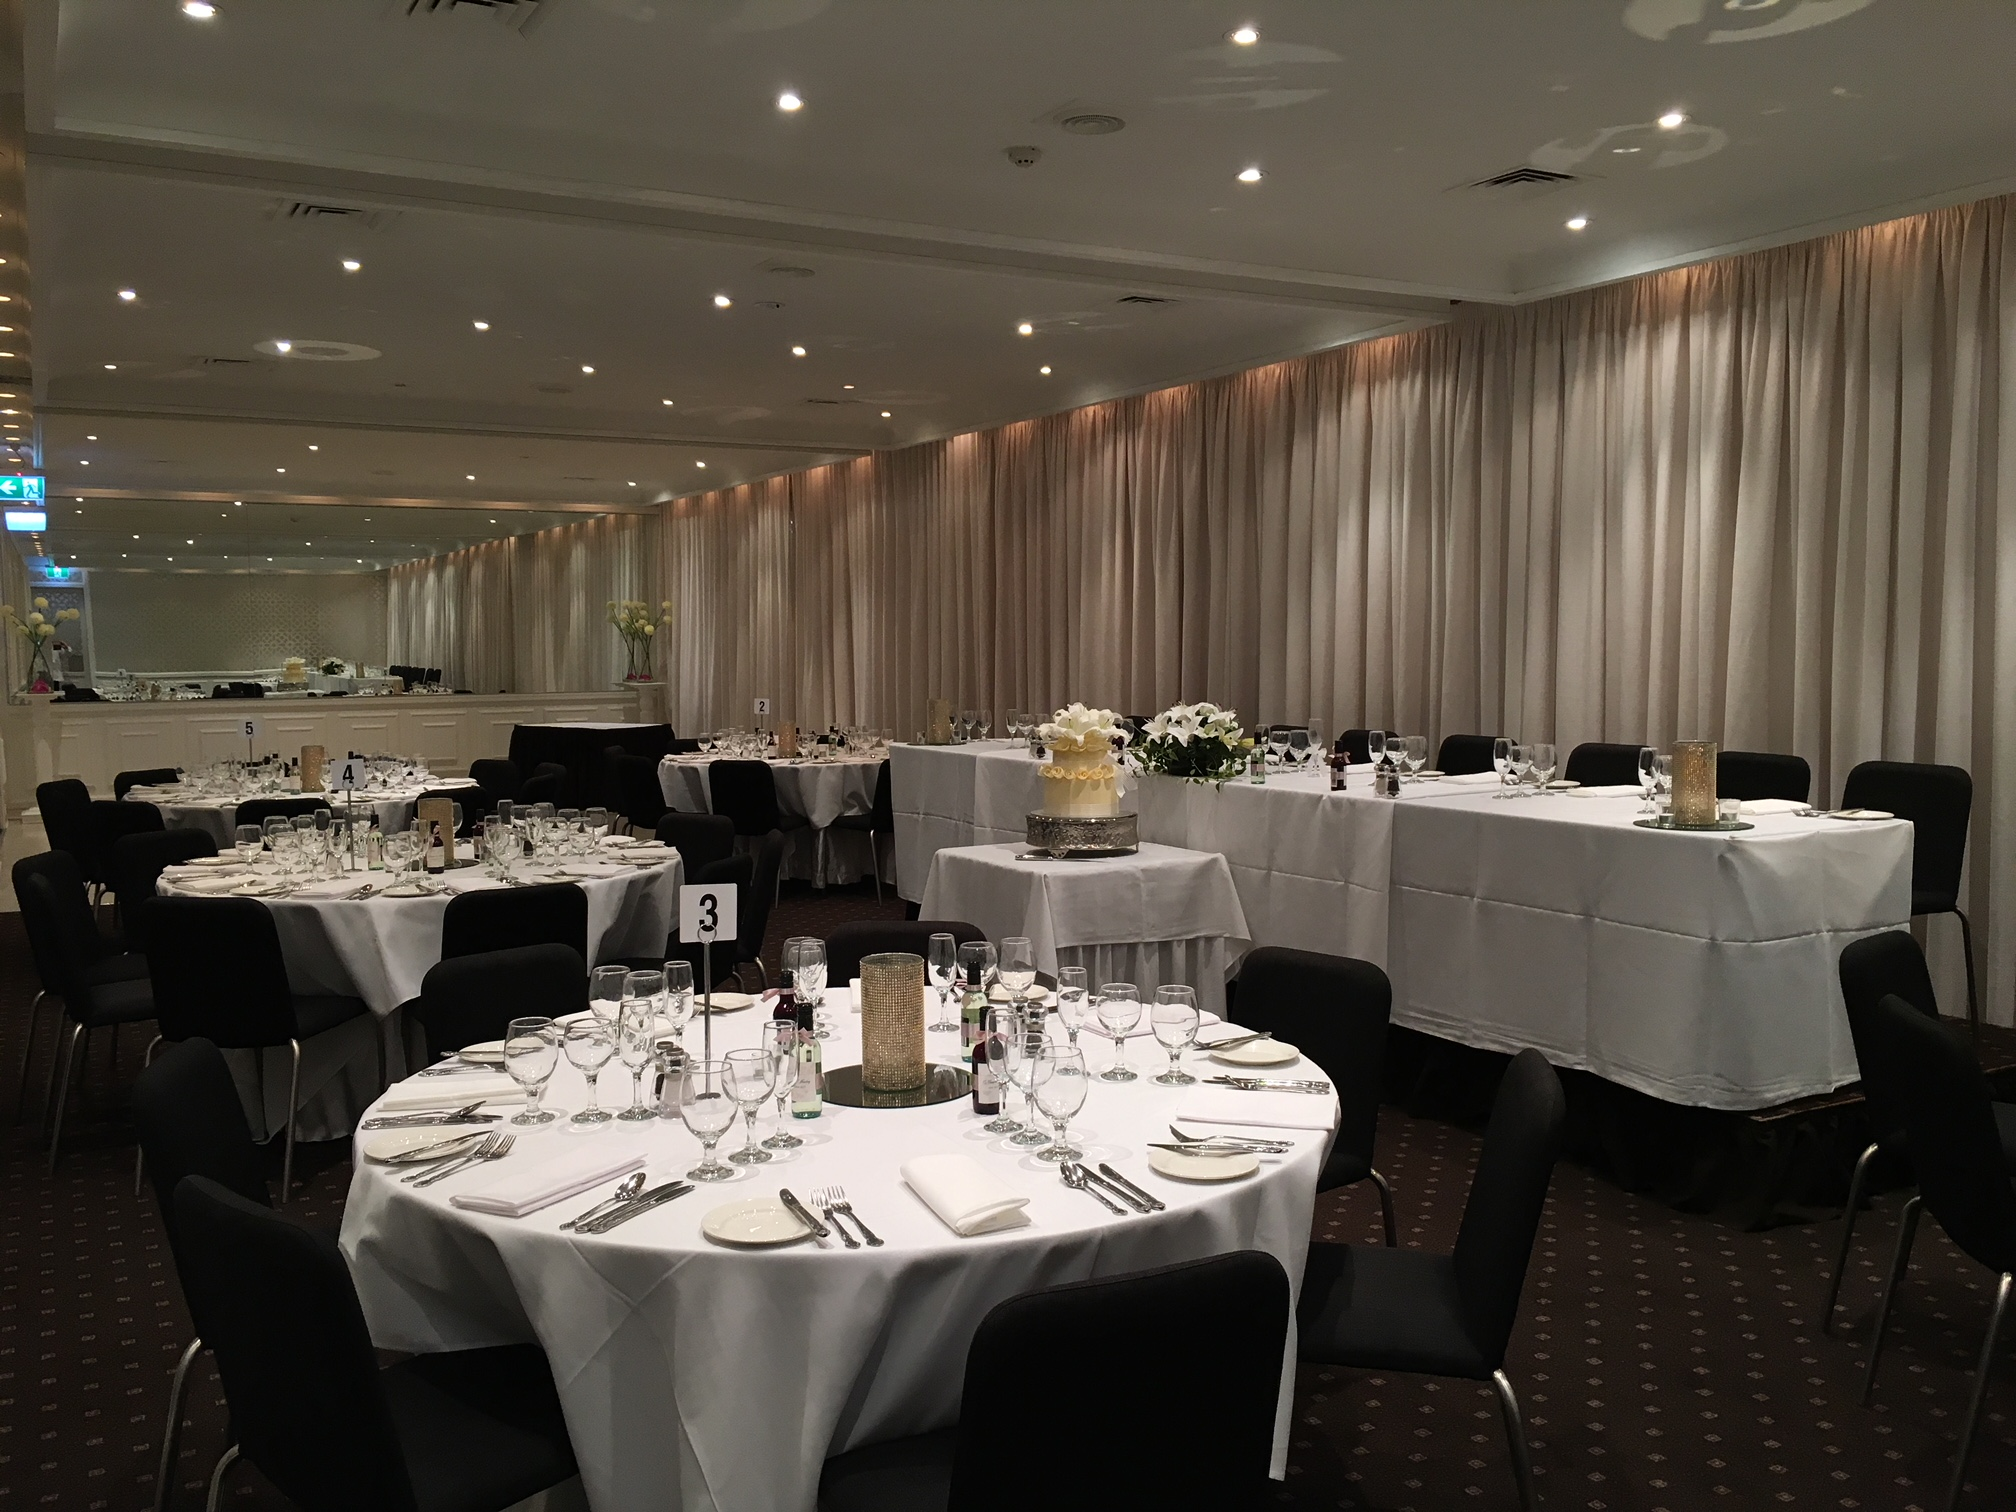 wedding chair cover hire brighton fold up with canopy wellington room savoy